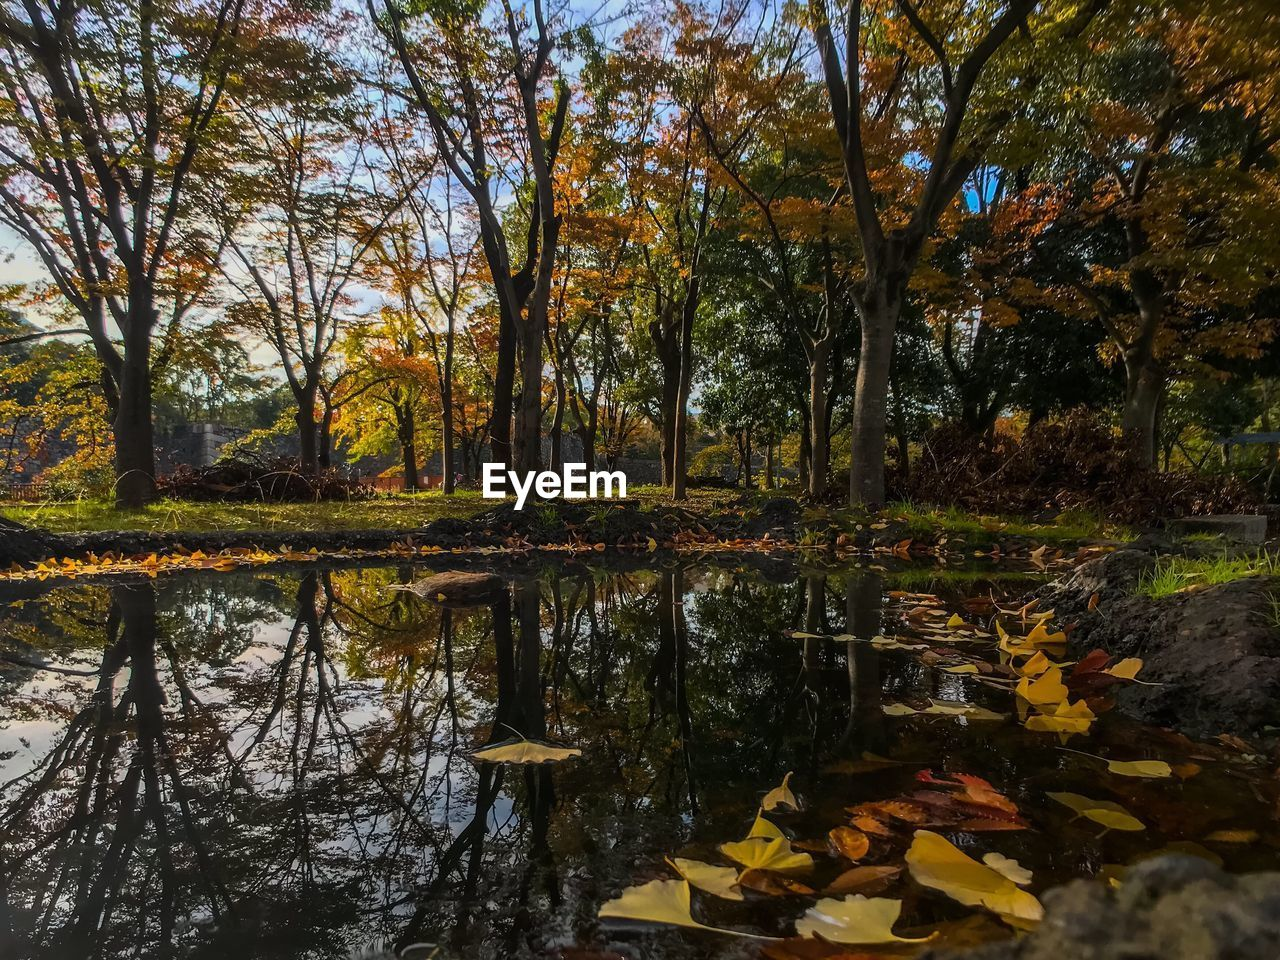 SCENIC VIEW OF LAKE AMIDST TREES DURING AUTUMN